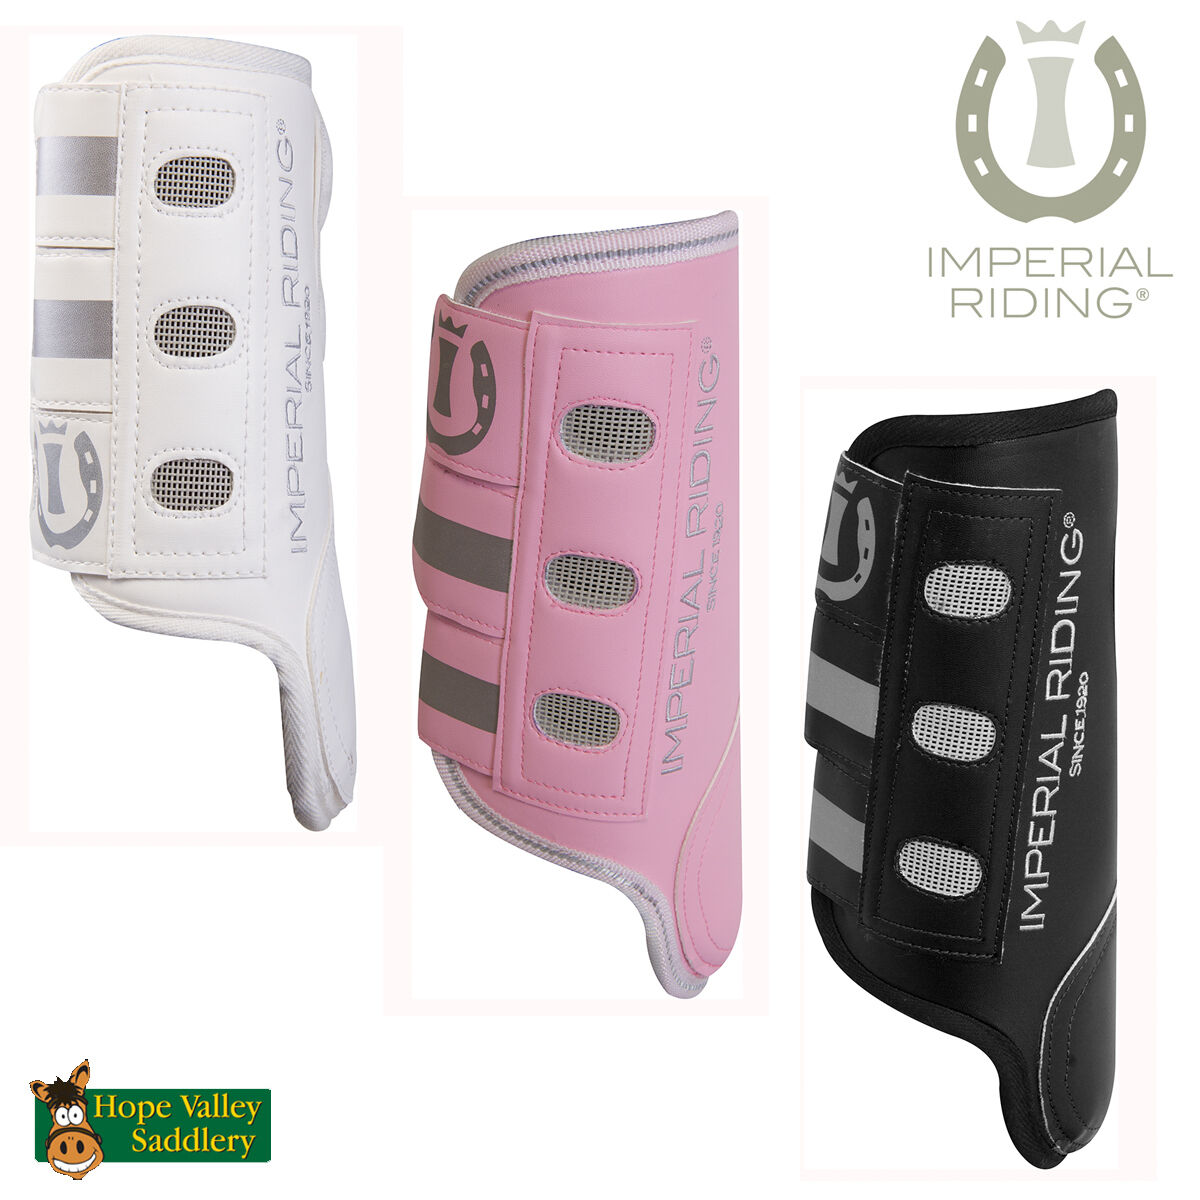 Imperial Riding Cool Action Tendon Boots FREE UK Shipping